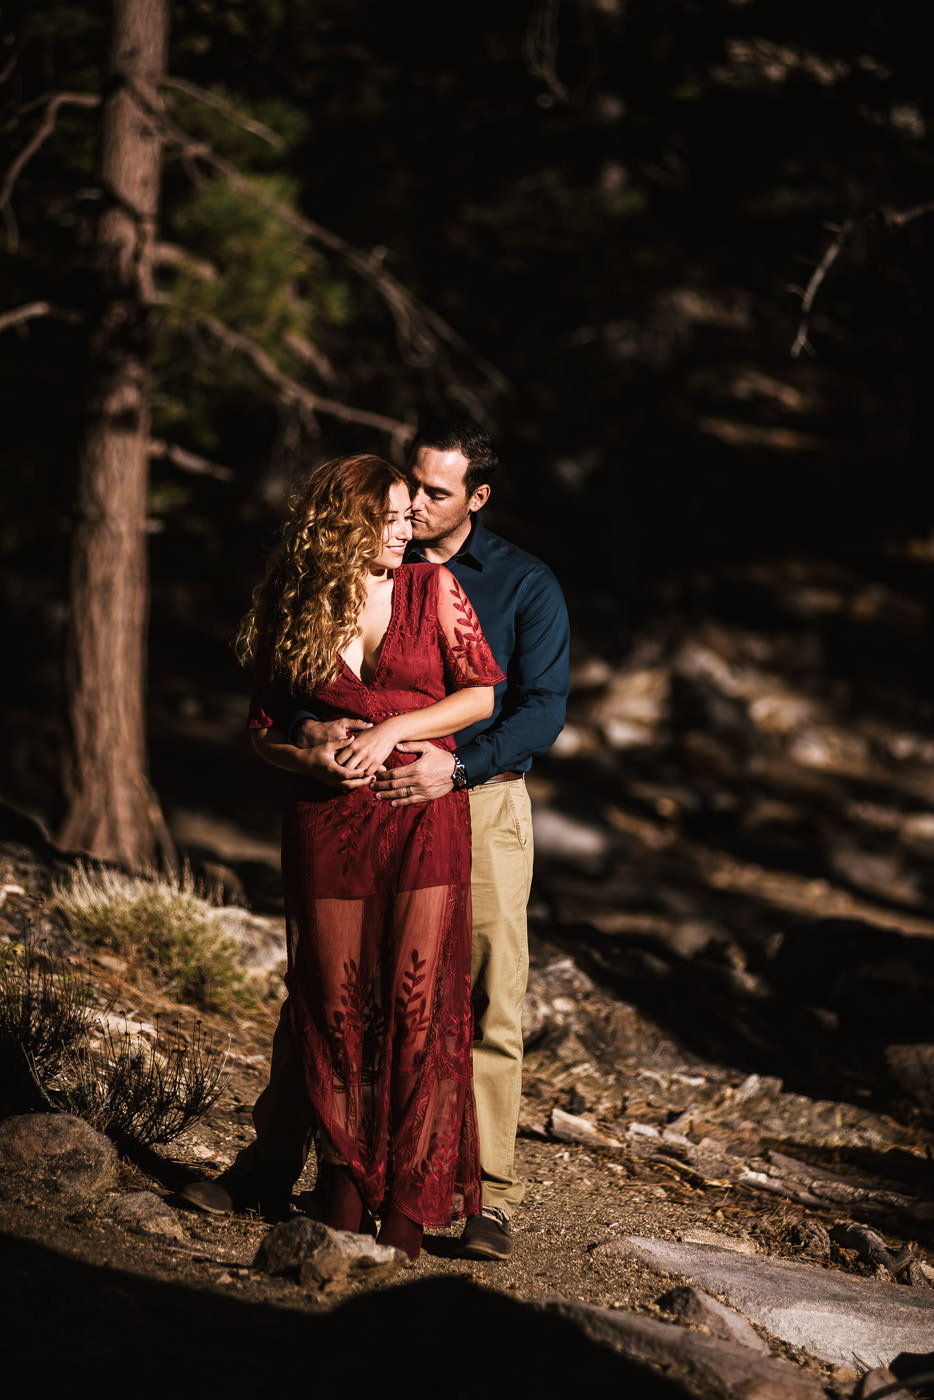 Romantic portraits for couples wildly in love.